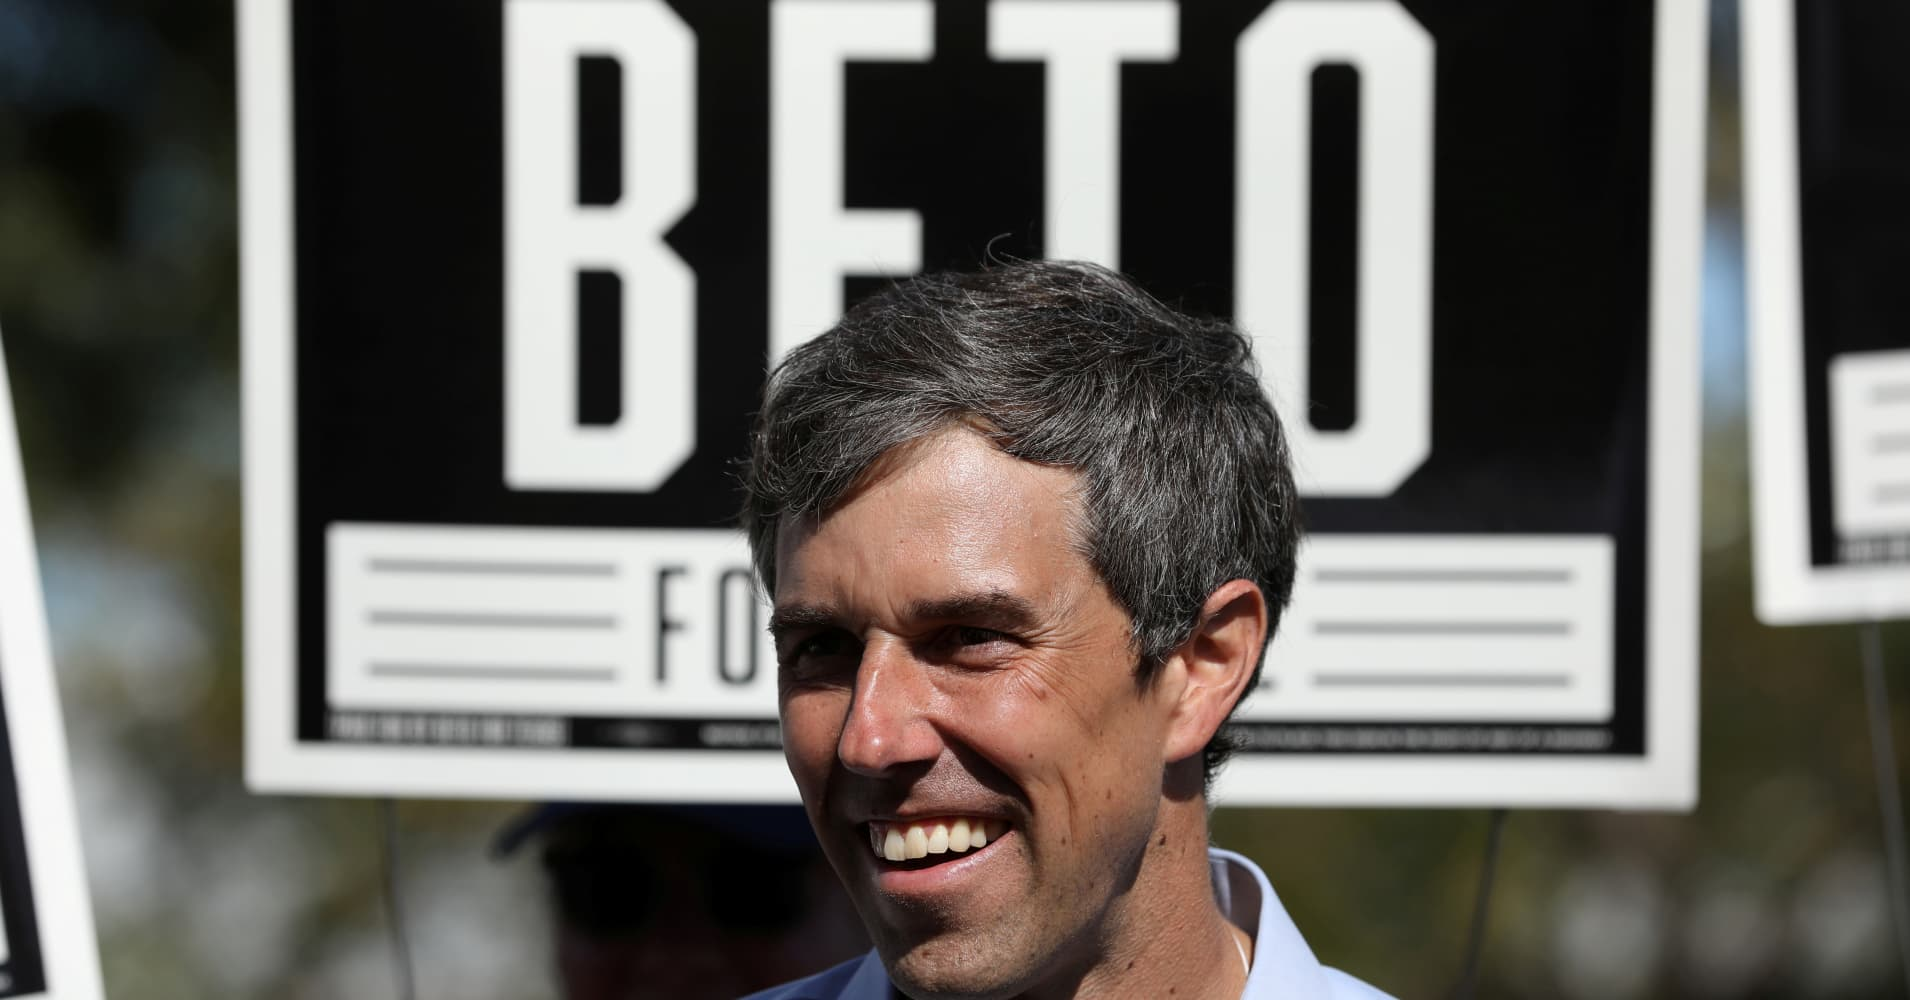 Beto O'Rourke (D-TX), greets supporters at a campaign rally in Plano, Texas, U.S., November 2, 2018.